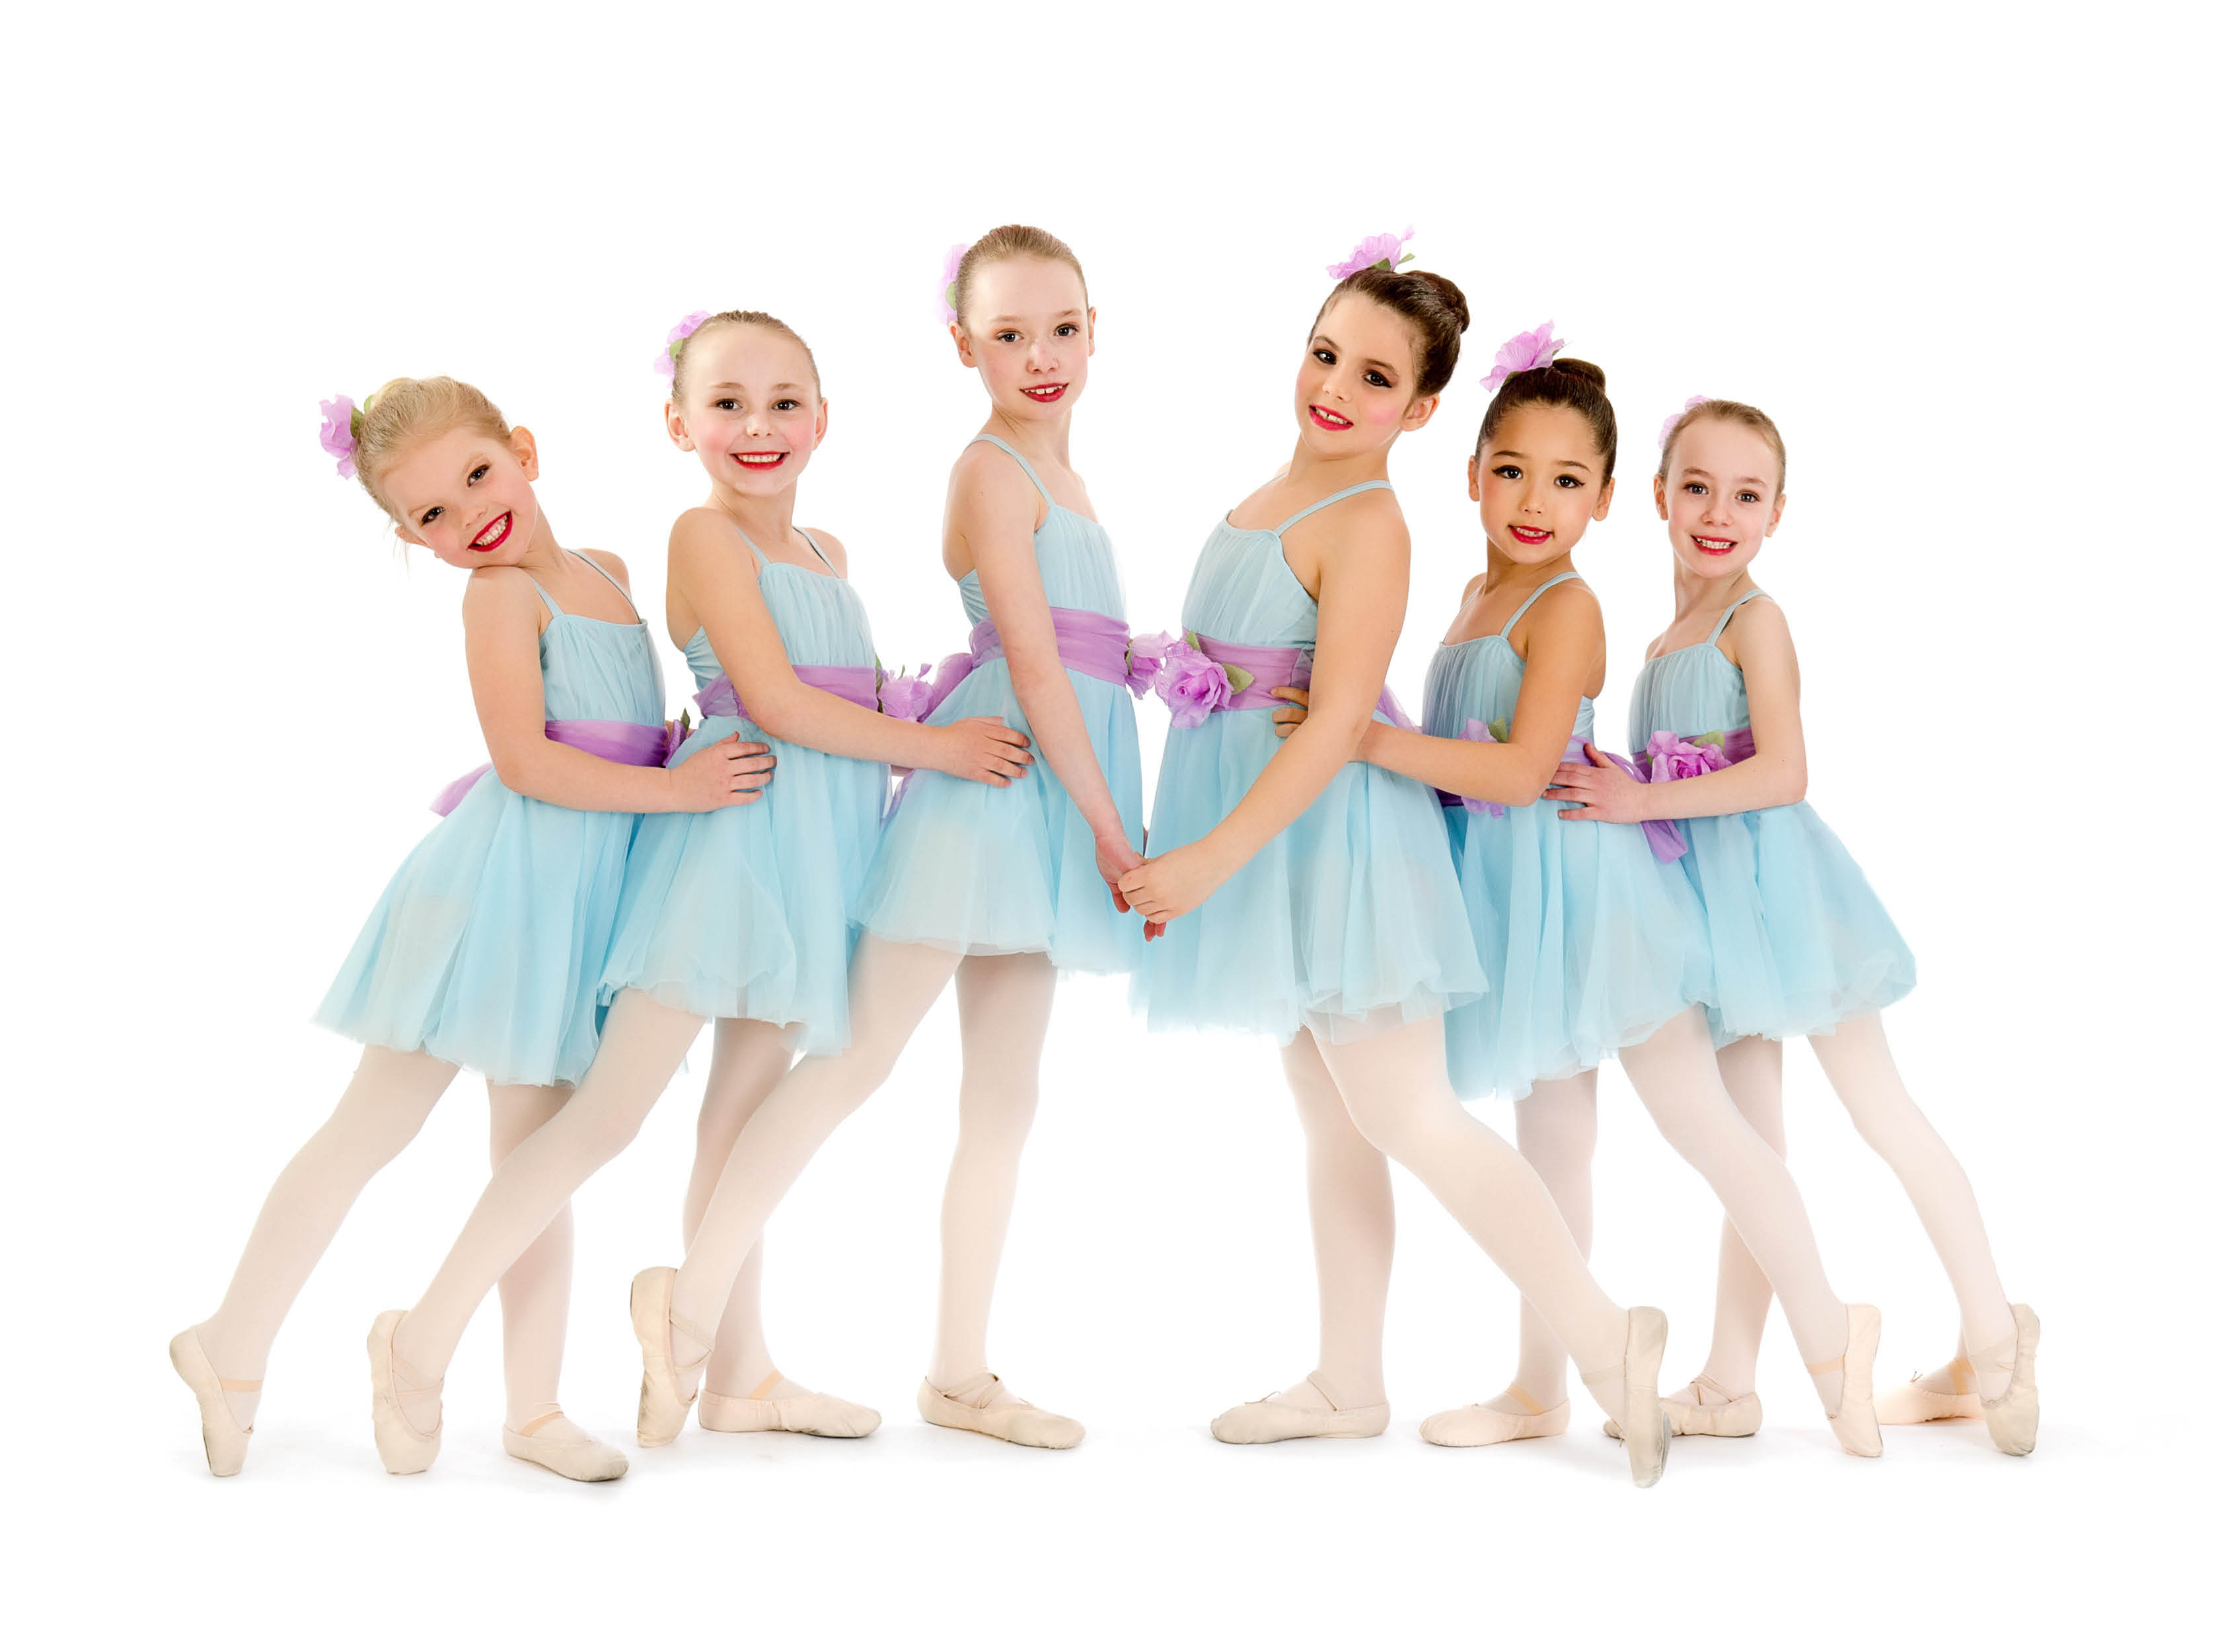 Young ballet dancers ready for a recital